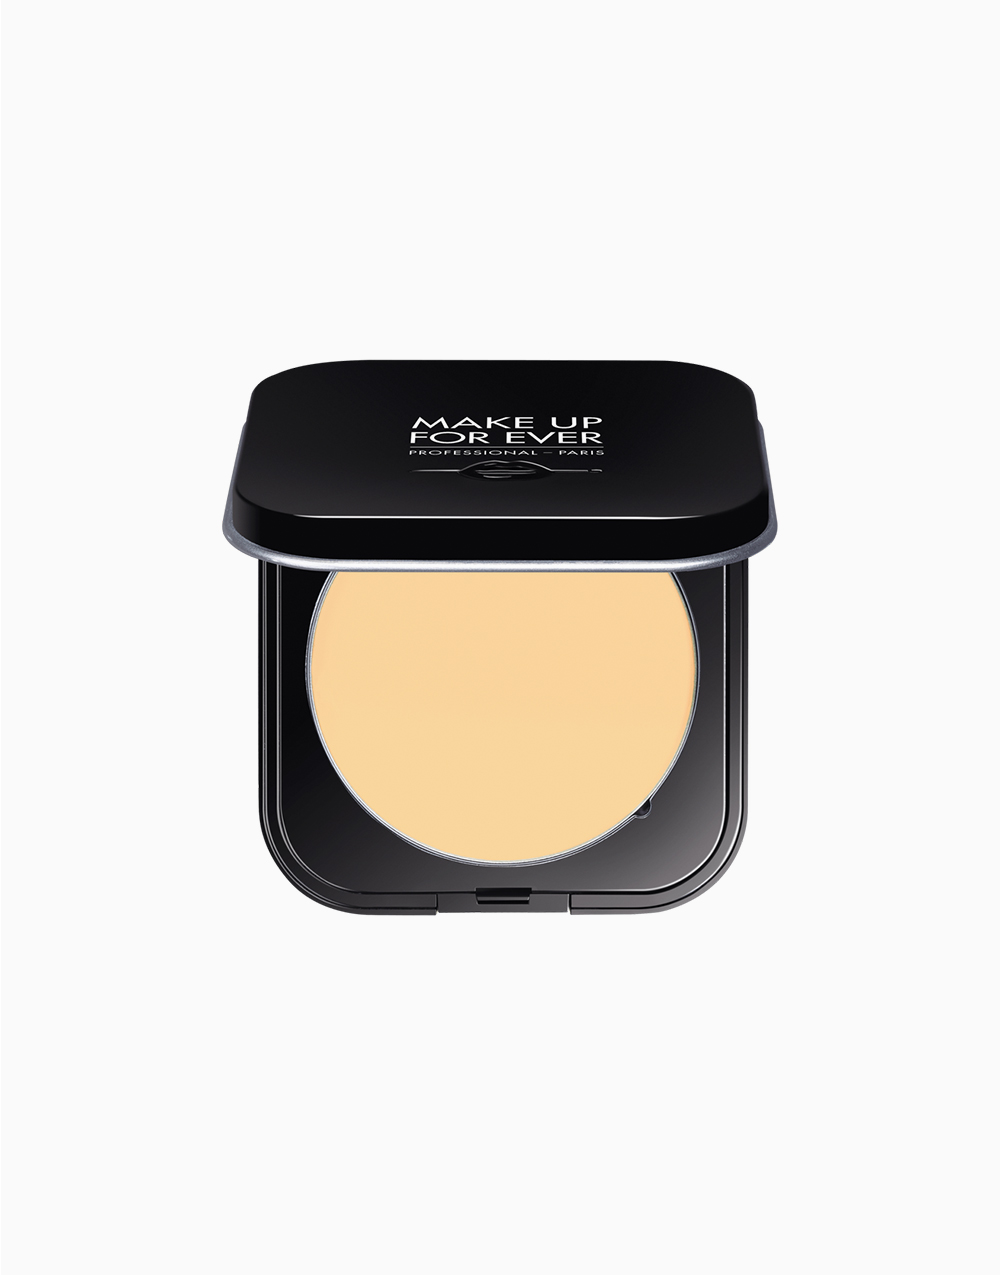 Ultra HD Pressed Powder (6.2g) by Make Up For Ever   #02